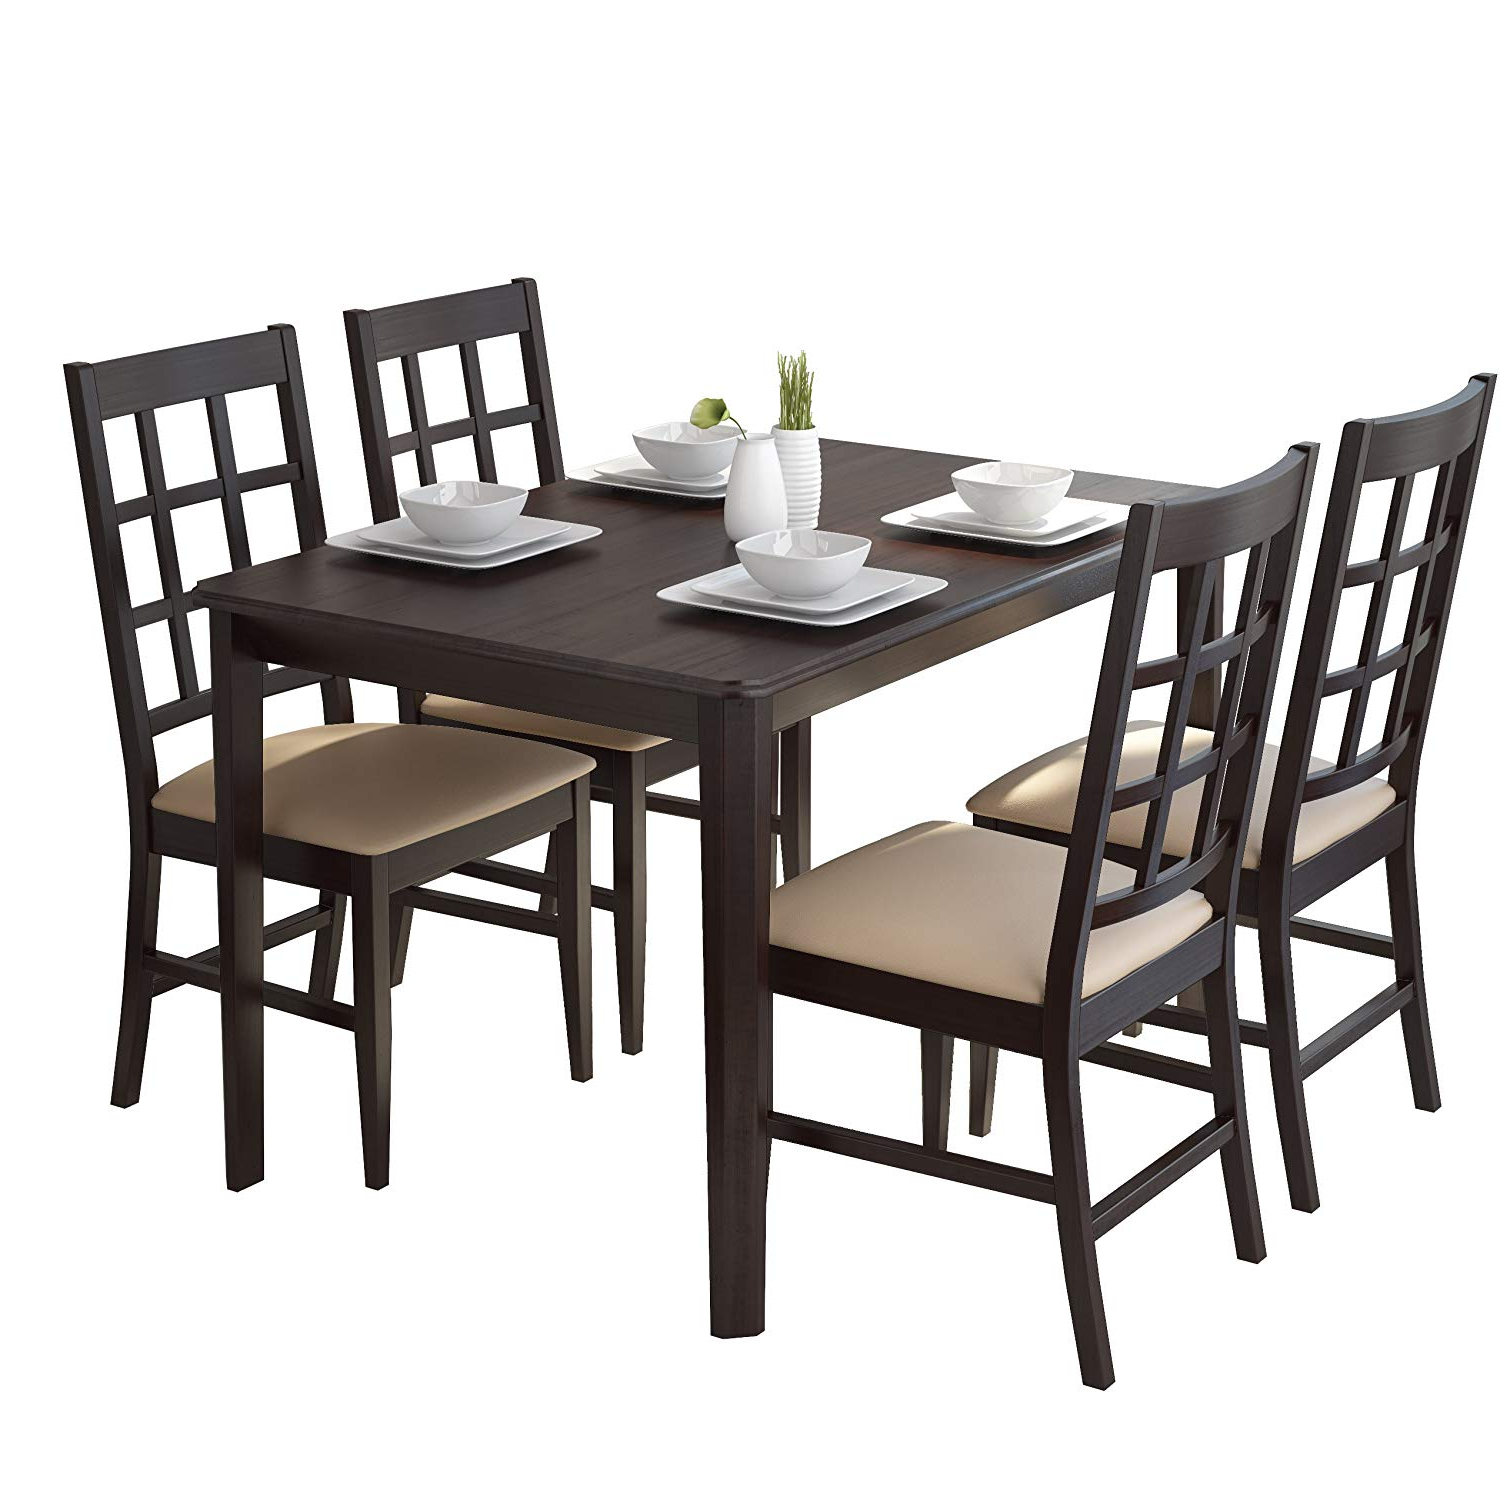 Latest Atwood Transitional Rectangular Dining Tables Inside Amazon – Corliving Drg 695 Z Atwood Dining Set, Brown (View 5 of 25)